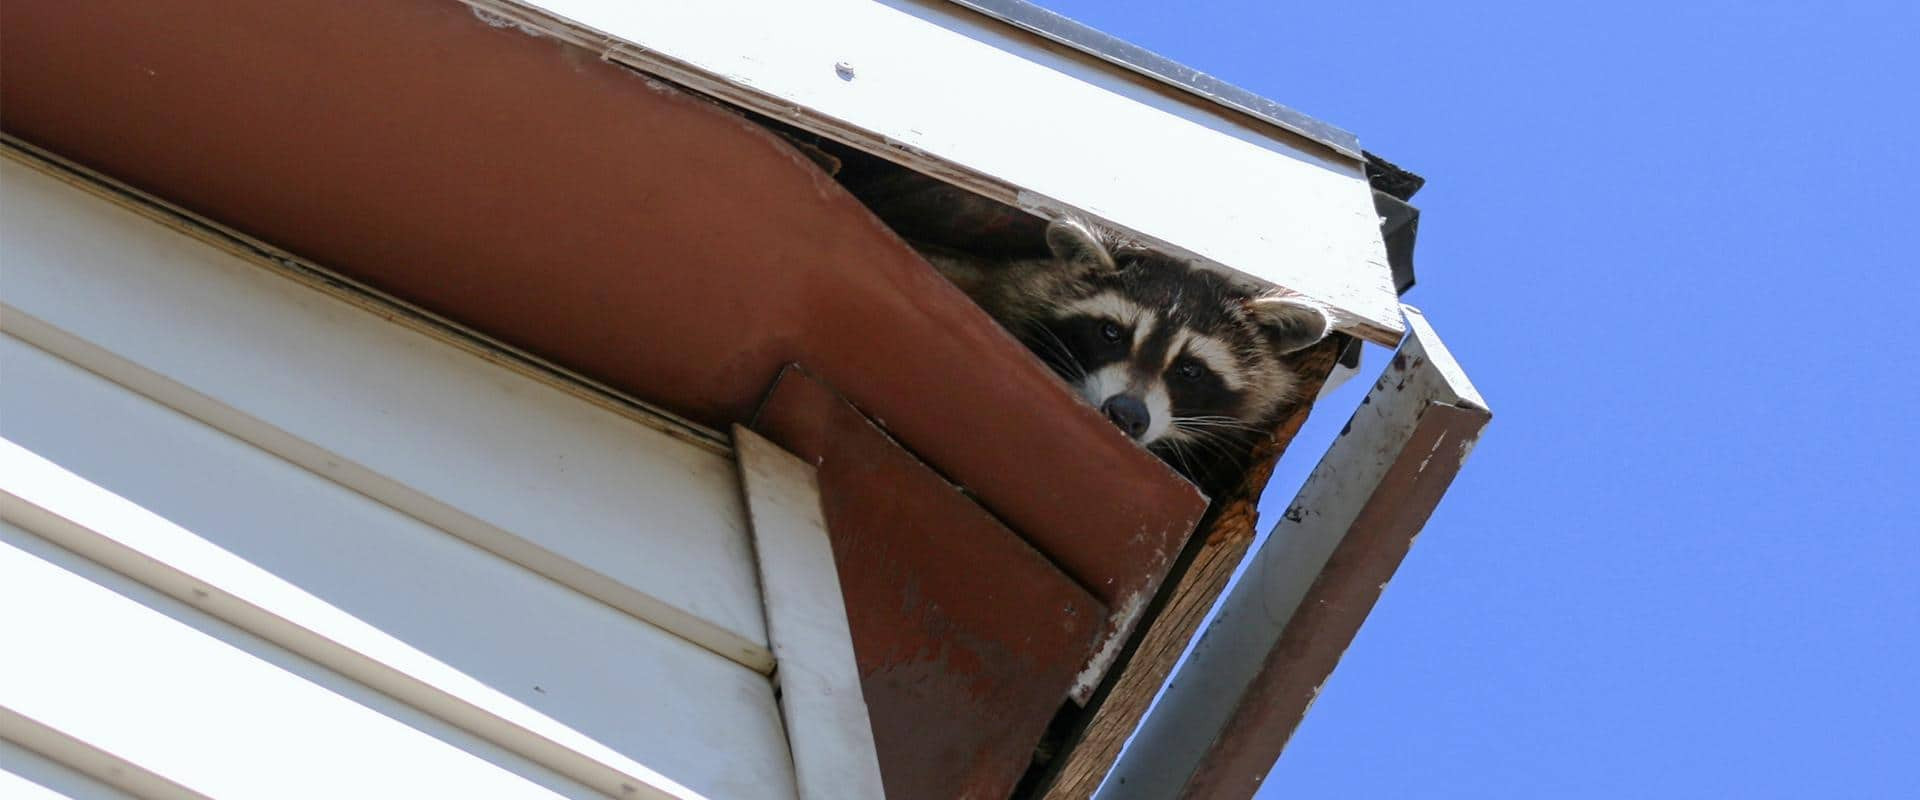 raccoon peaking out of ellensburg wa home